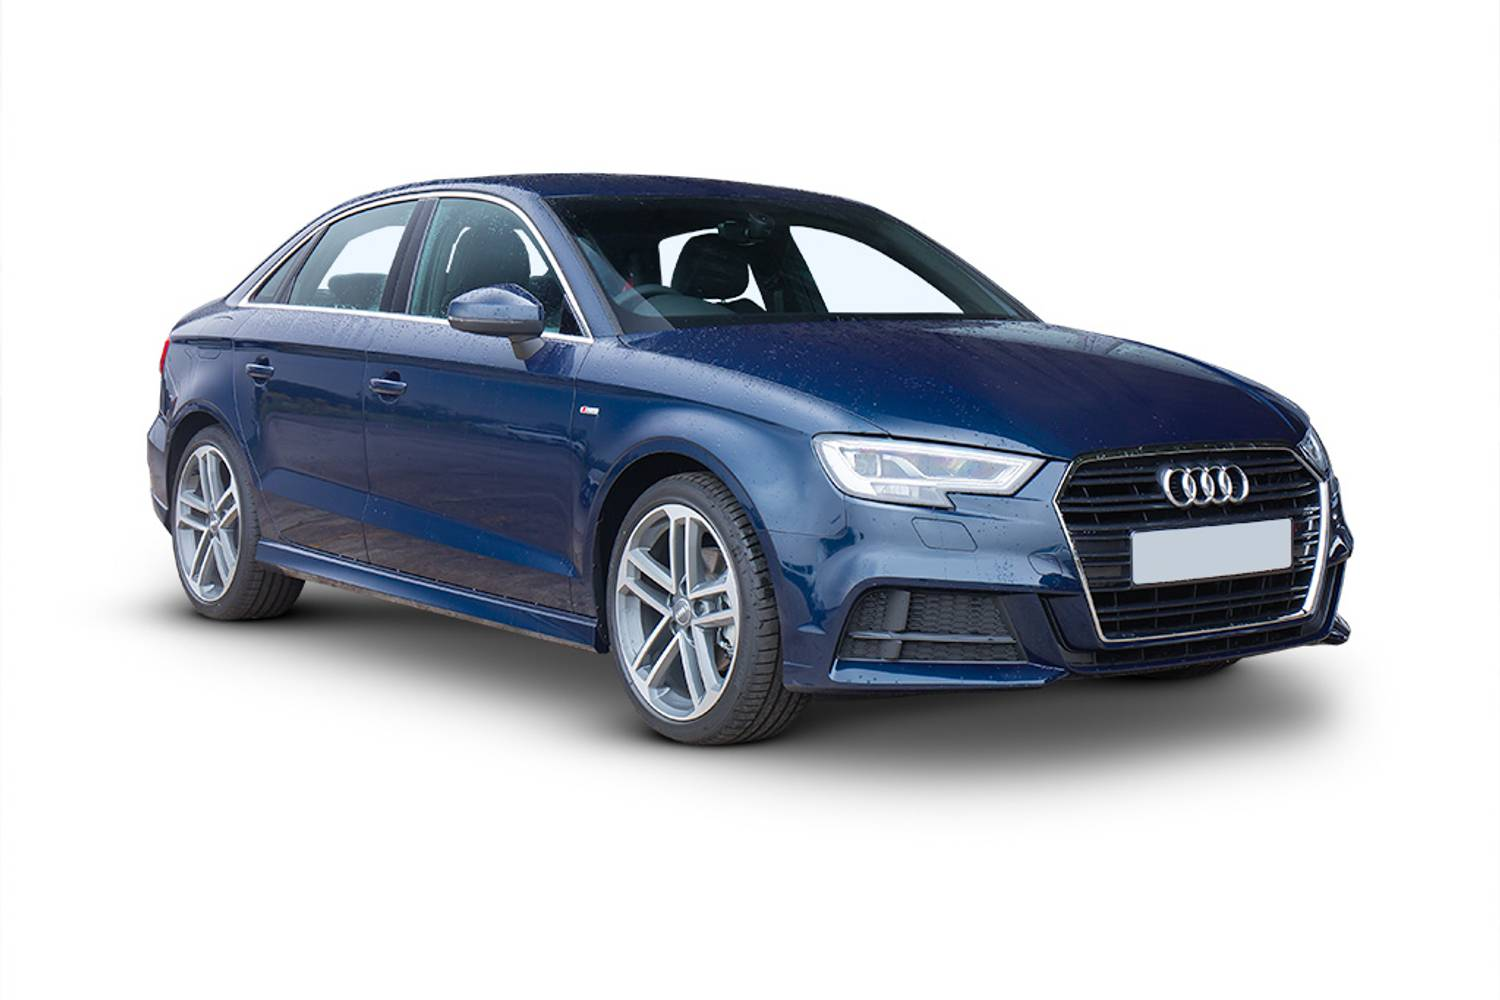 New Audi A3 Diesel Saloon 40 Tdi 184 Ps Quattro Black Edition 4 Door S Tronic 2019 For Sale